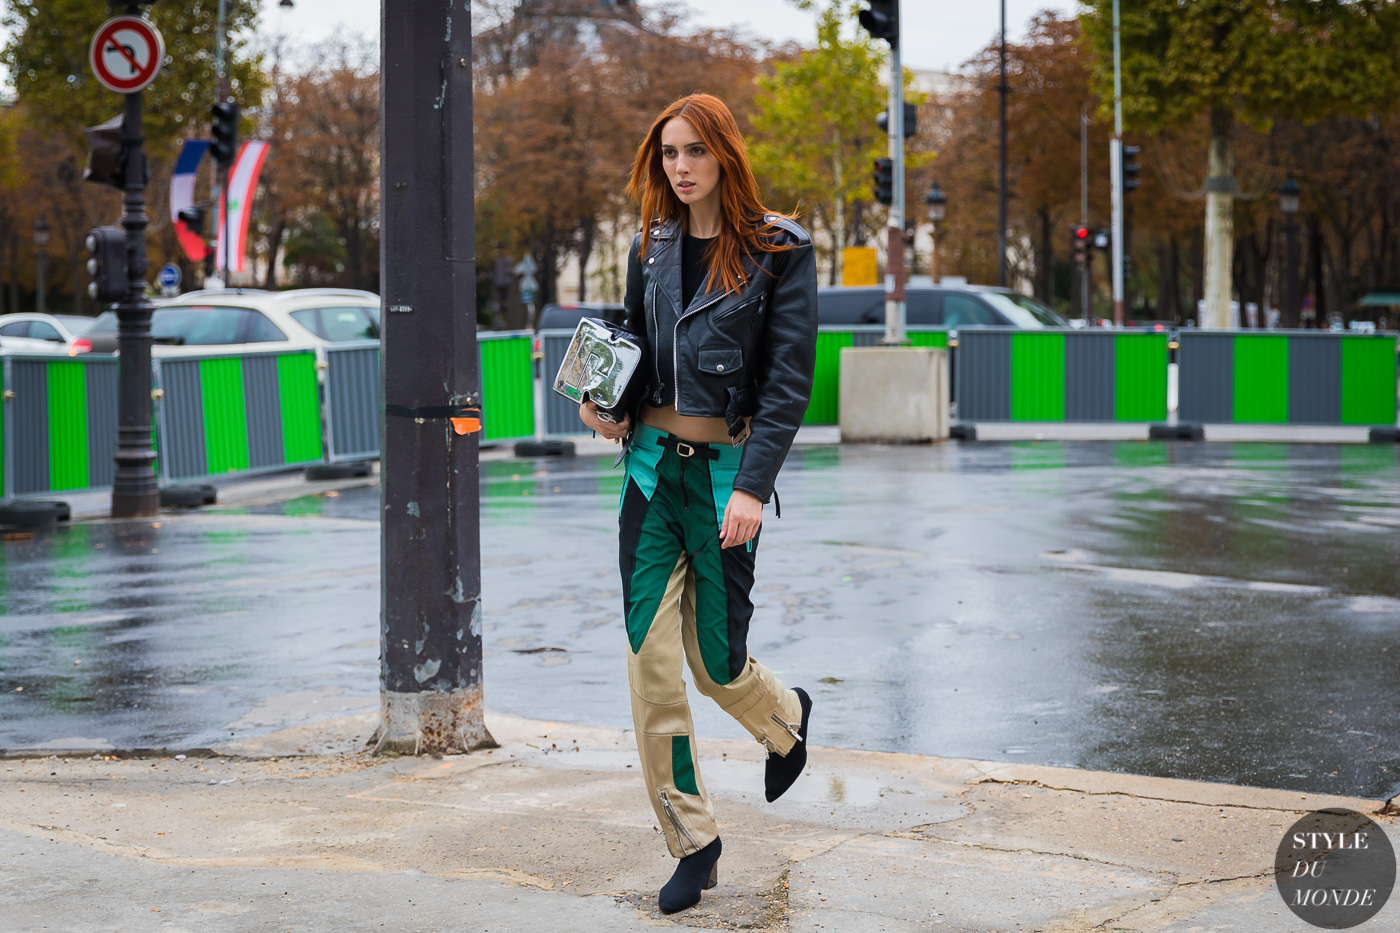 Teddy Quinlivan by STYLEDUMONDE Street Style Fashion Photography_48A9868